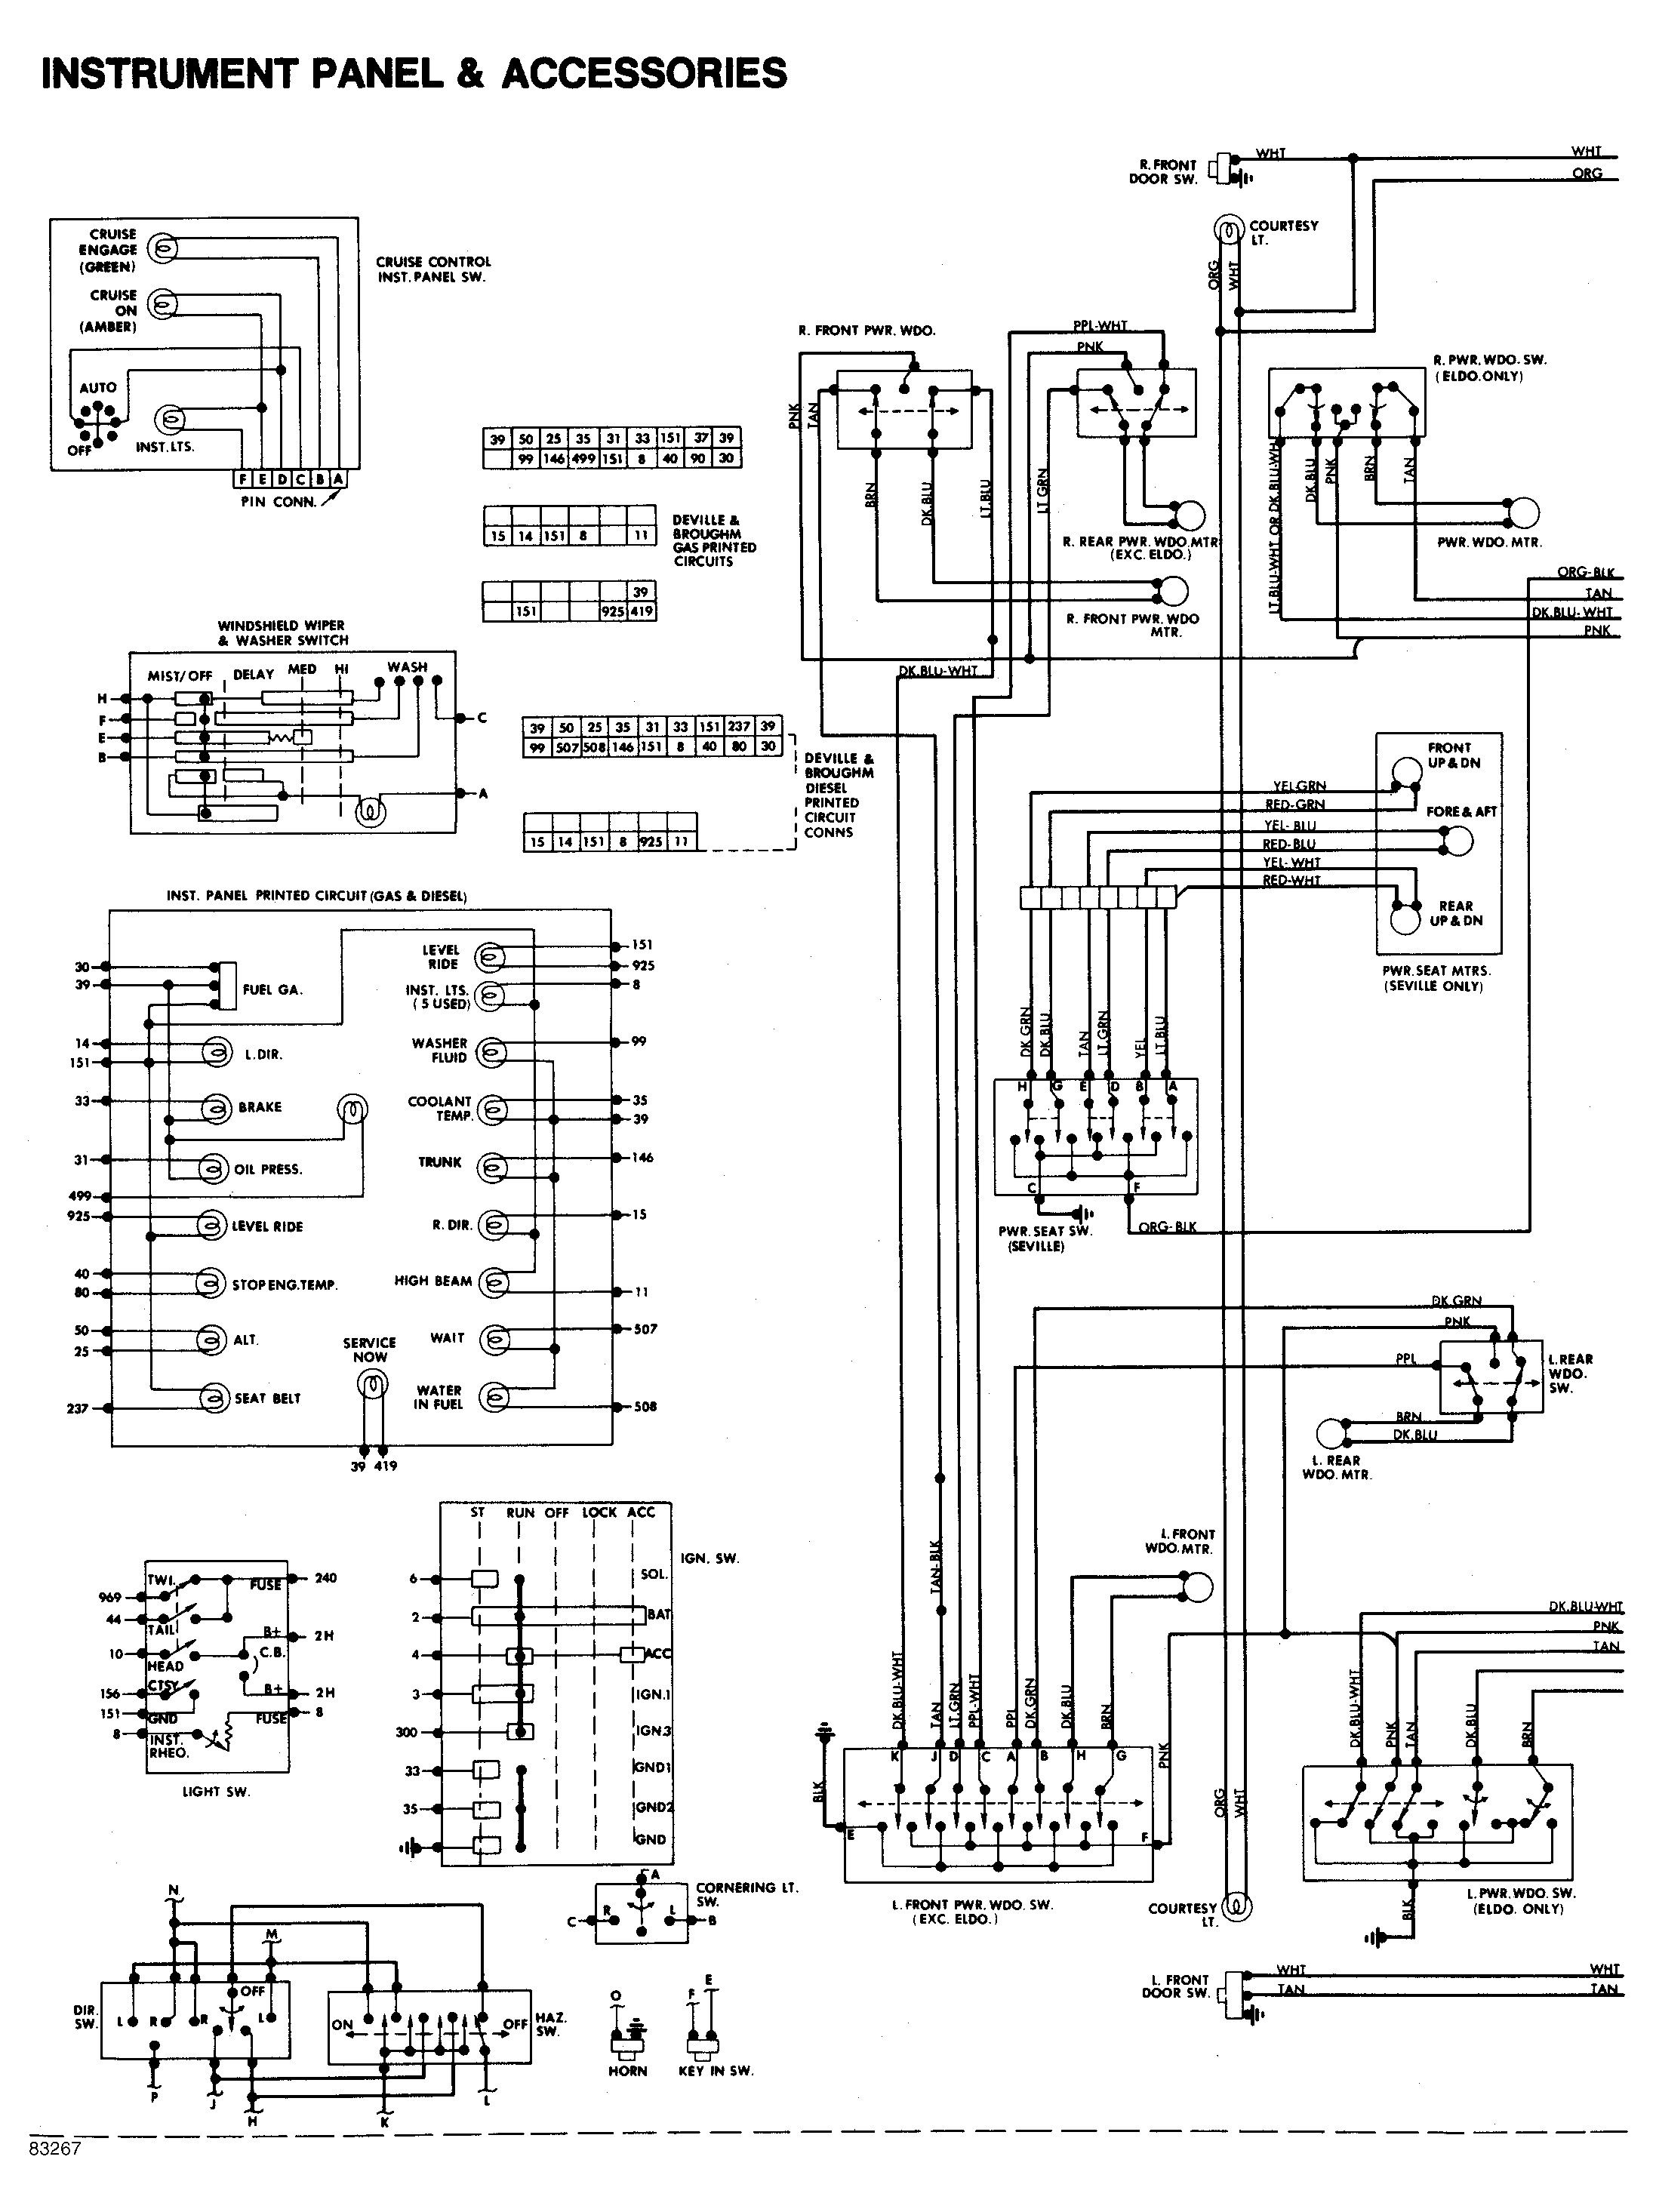 2000 honda accord radio wiring diagram fresh daewoo leganza audio 2000 honda crv wiring diagram 2000 [ 2194 x 2931 Pixel ]